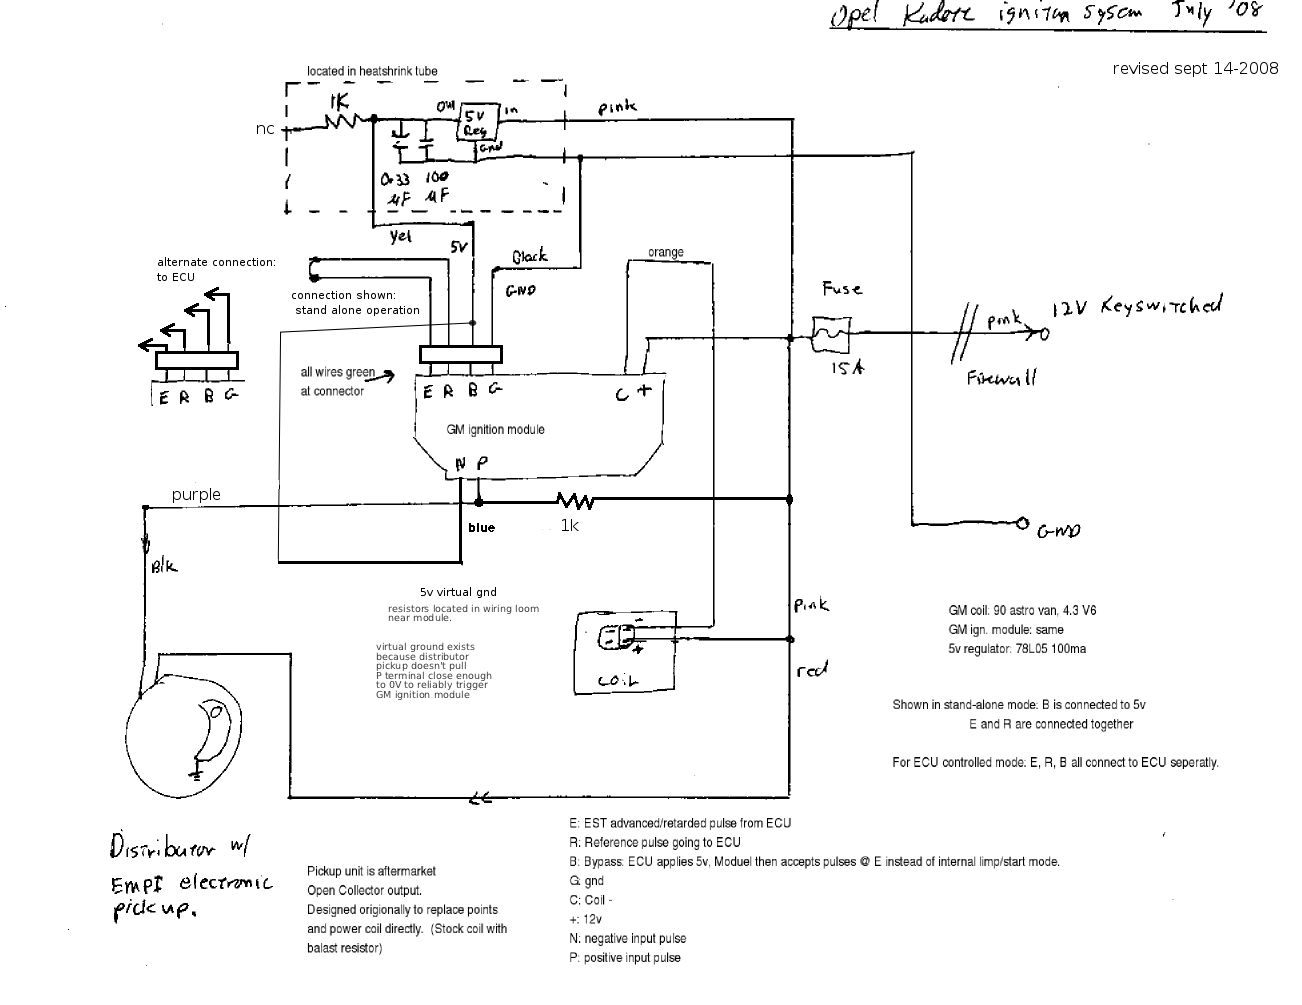 cpt wiring diagram 747 ecu hookup fuel pump pwr 12v keyswitched speed temperature ign pulses 5v